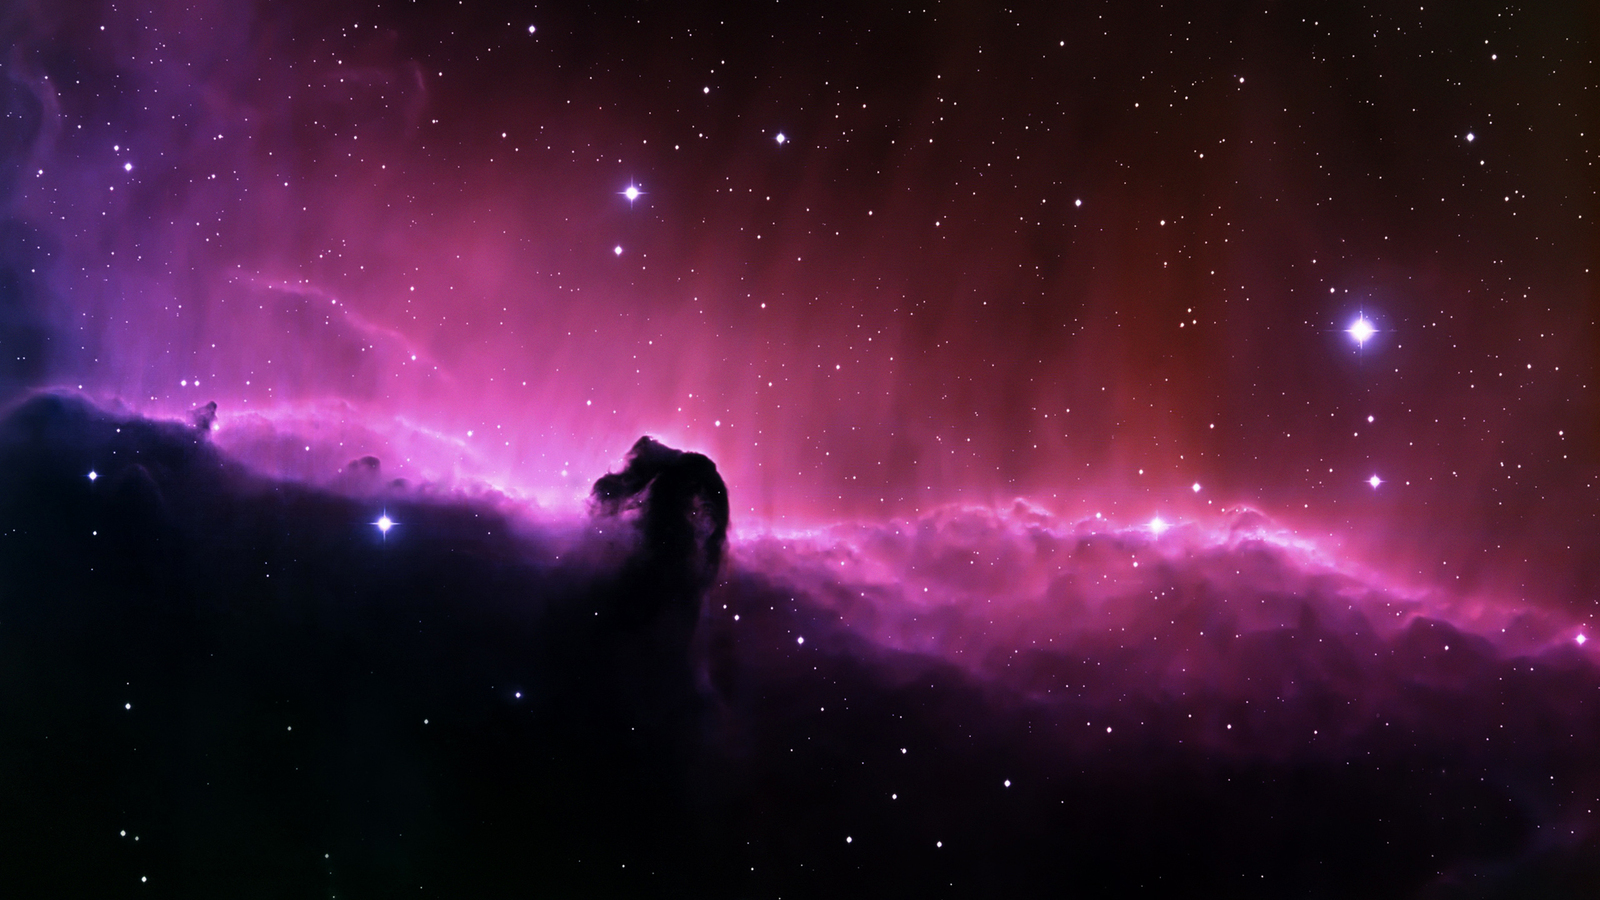 space desktop hd wallpaper Wallpaper Wallpapers Themes 1600x900